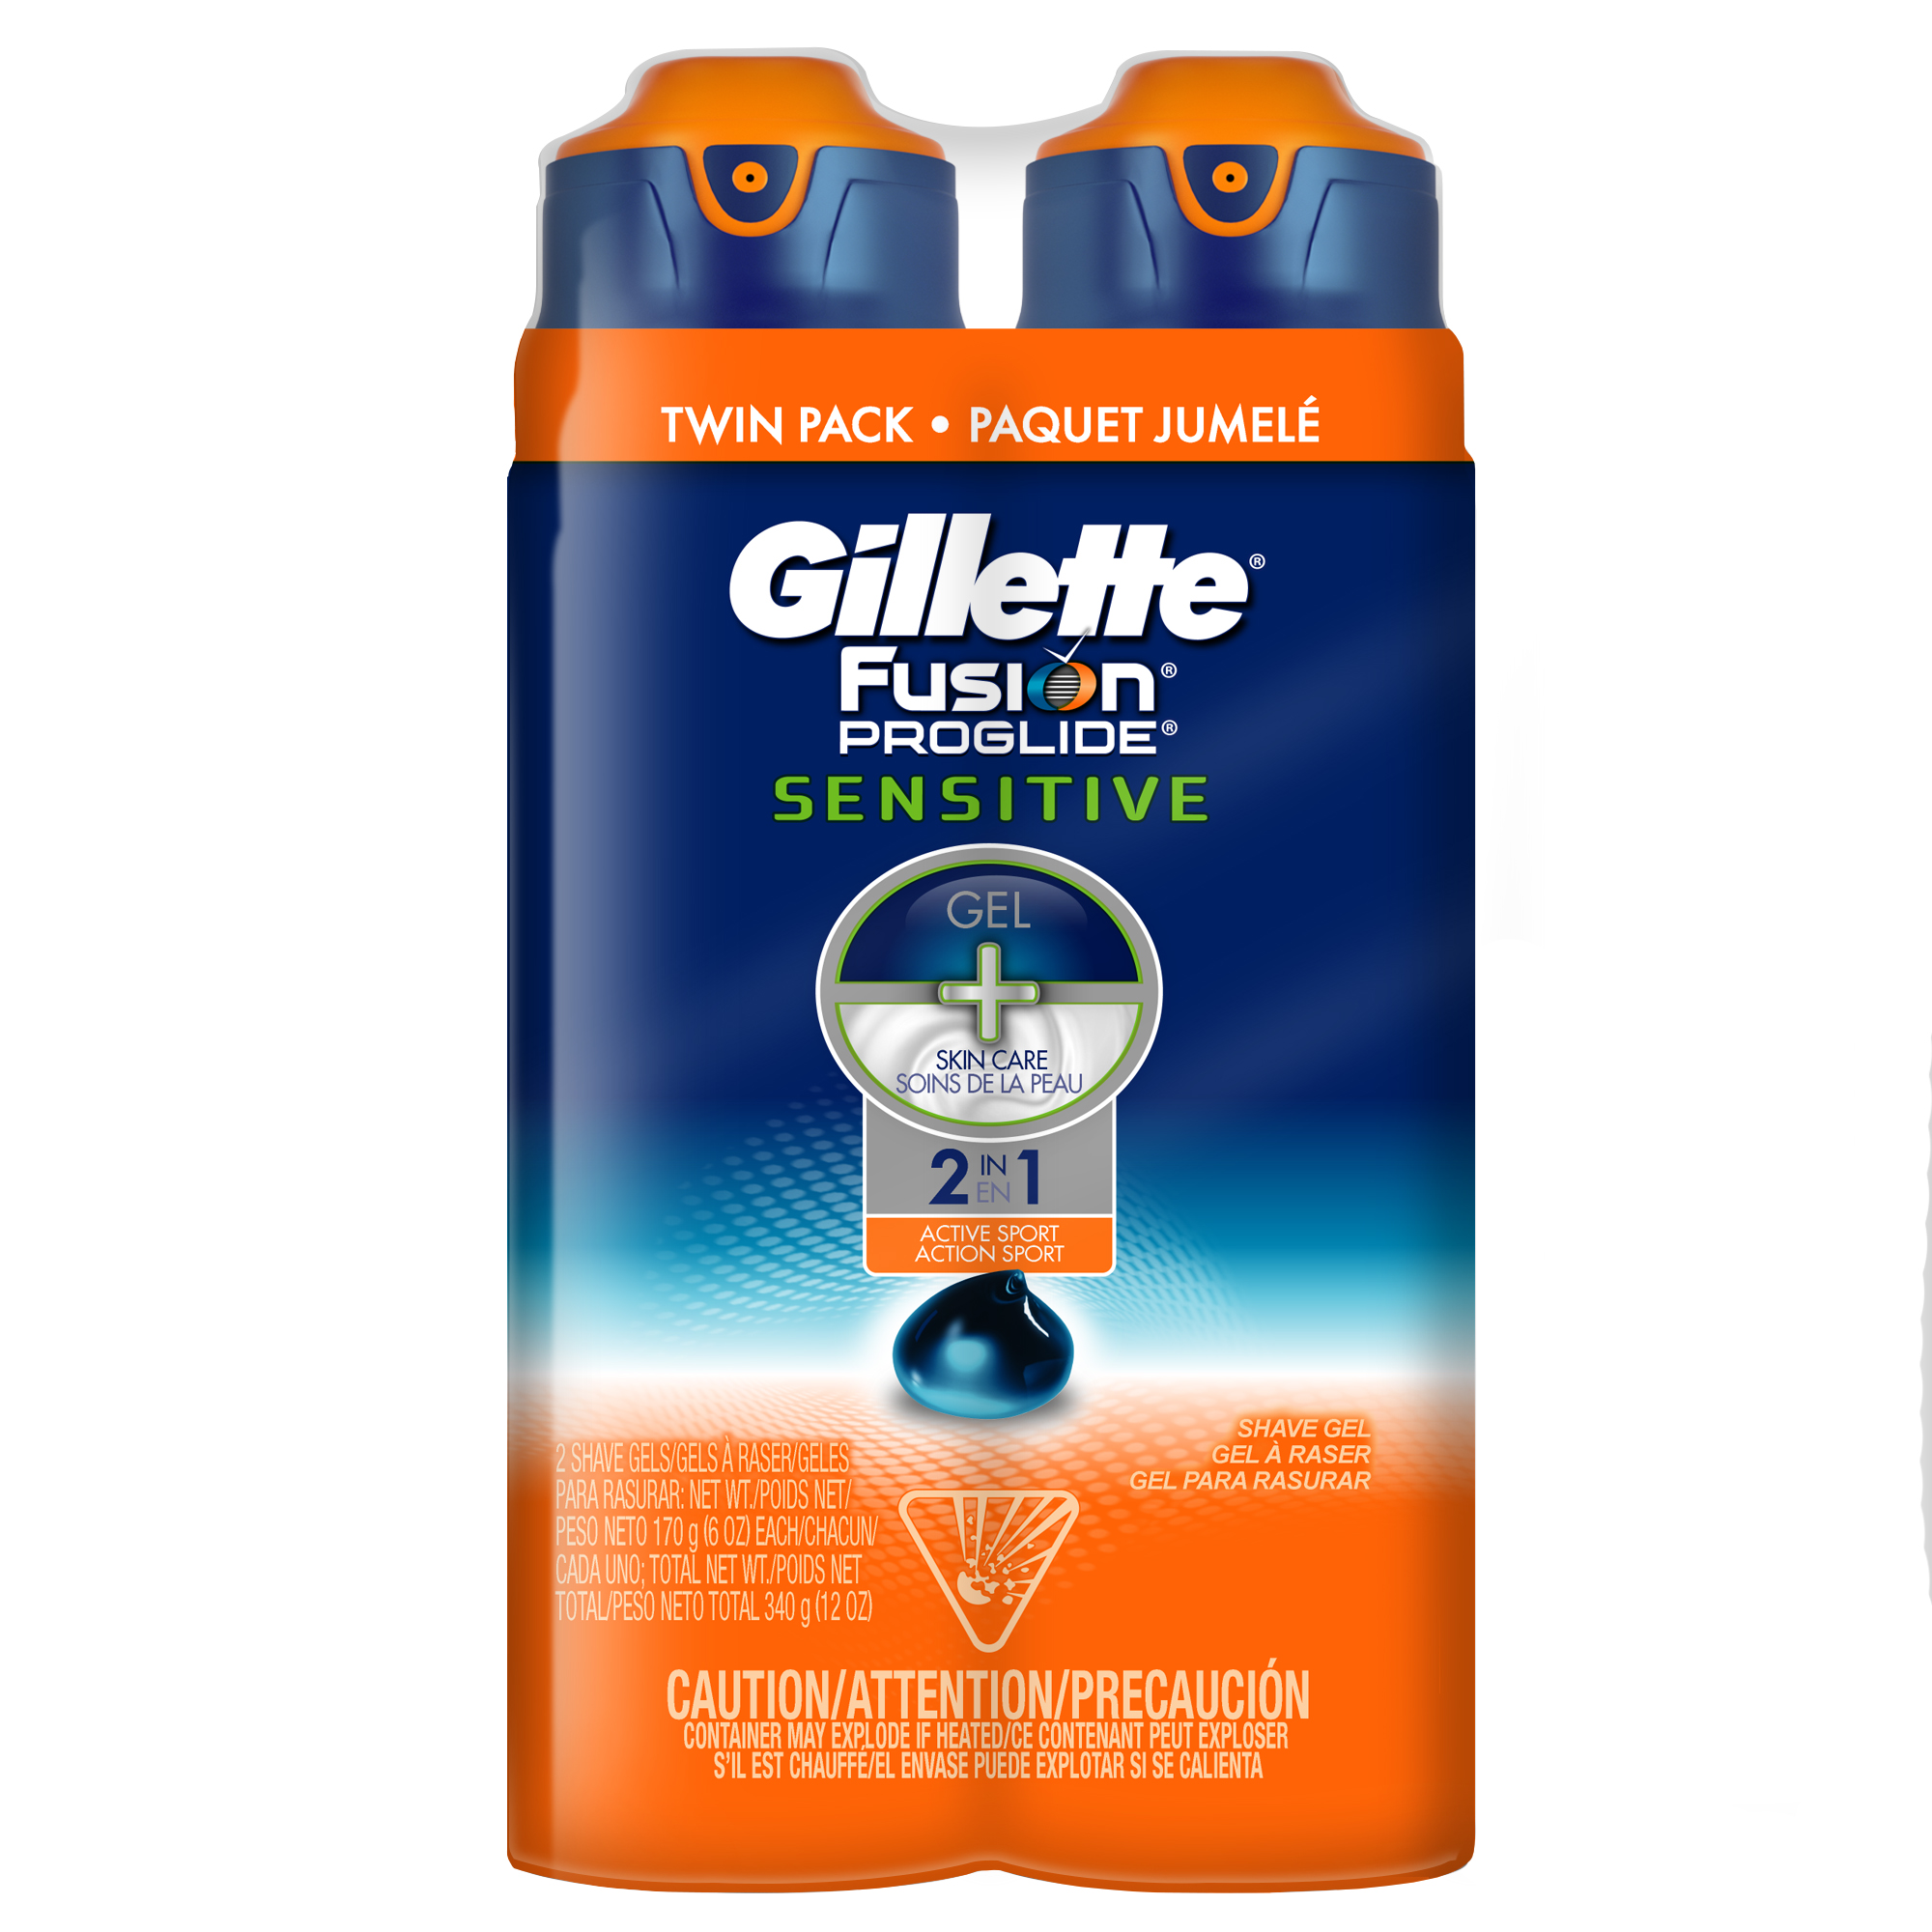 Gillette Fusion ProGlide Sensitive 2 in 1 Men's Shave Gel Twin Pack, Active Sport, 12oz